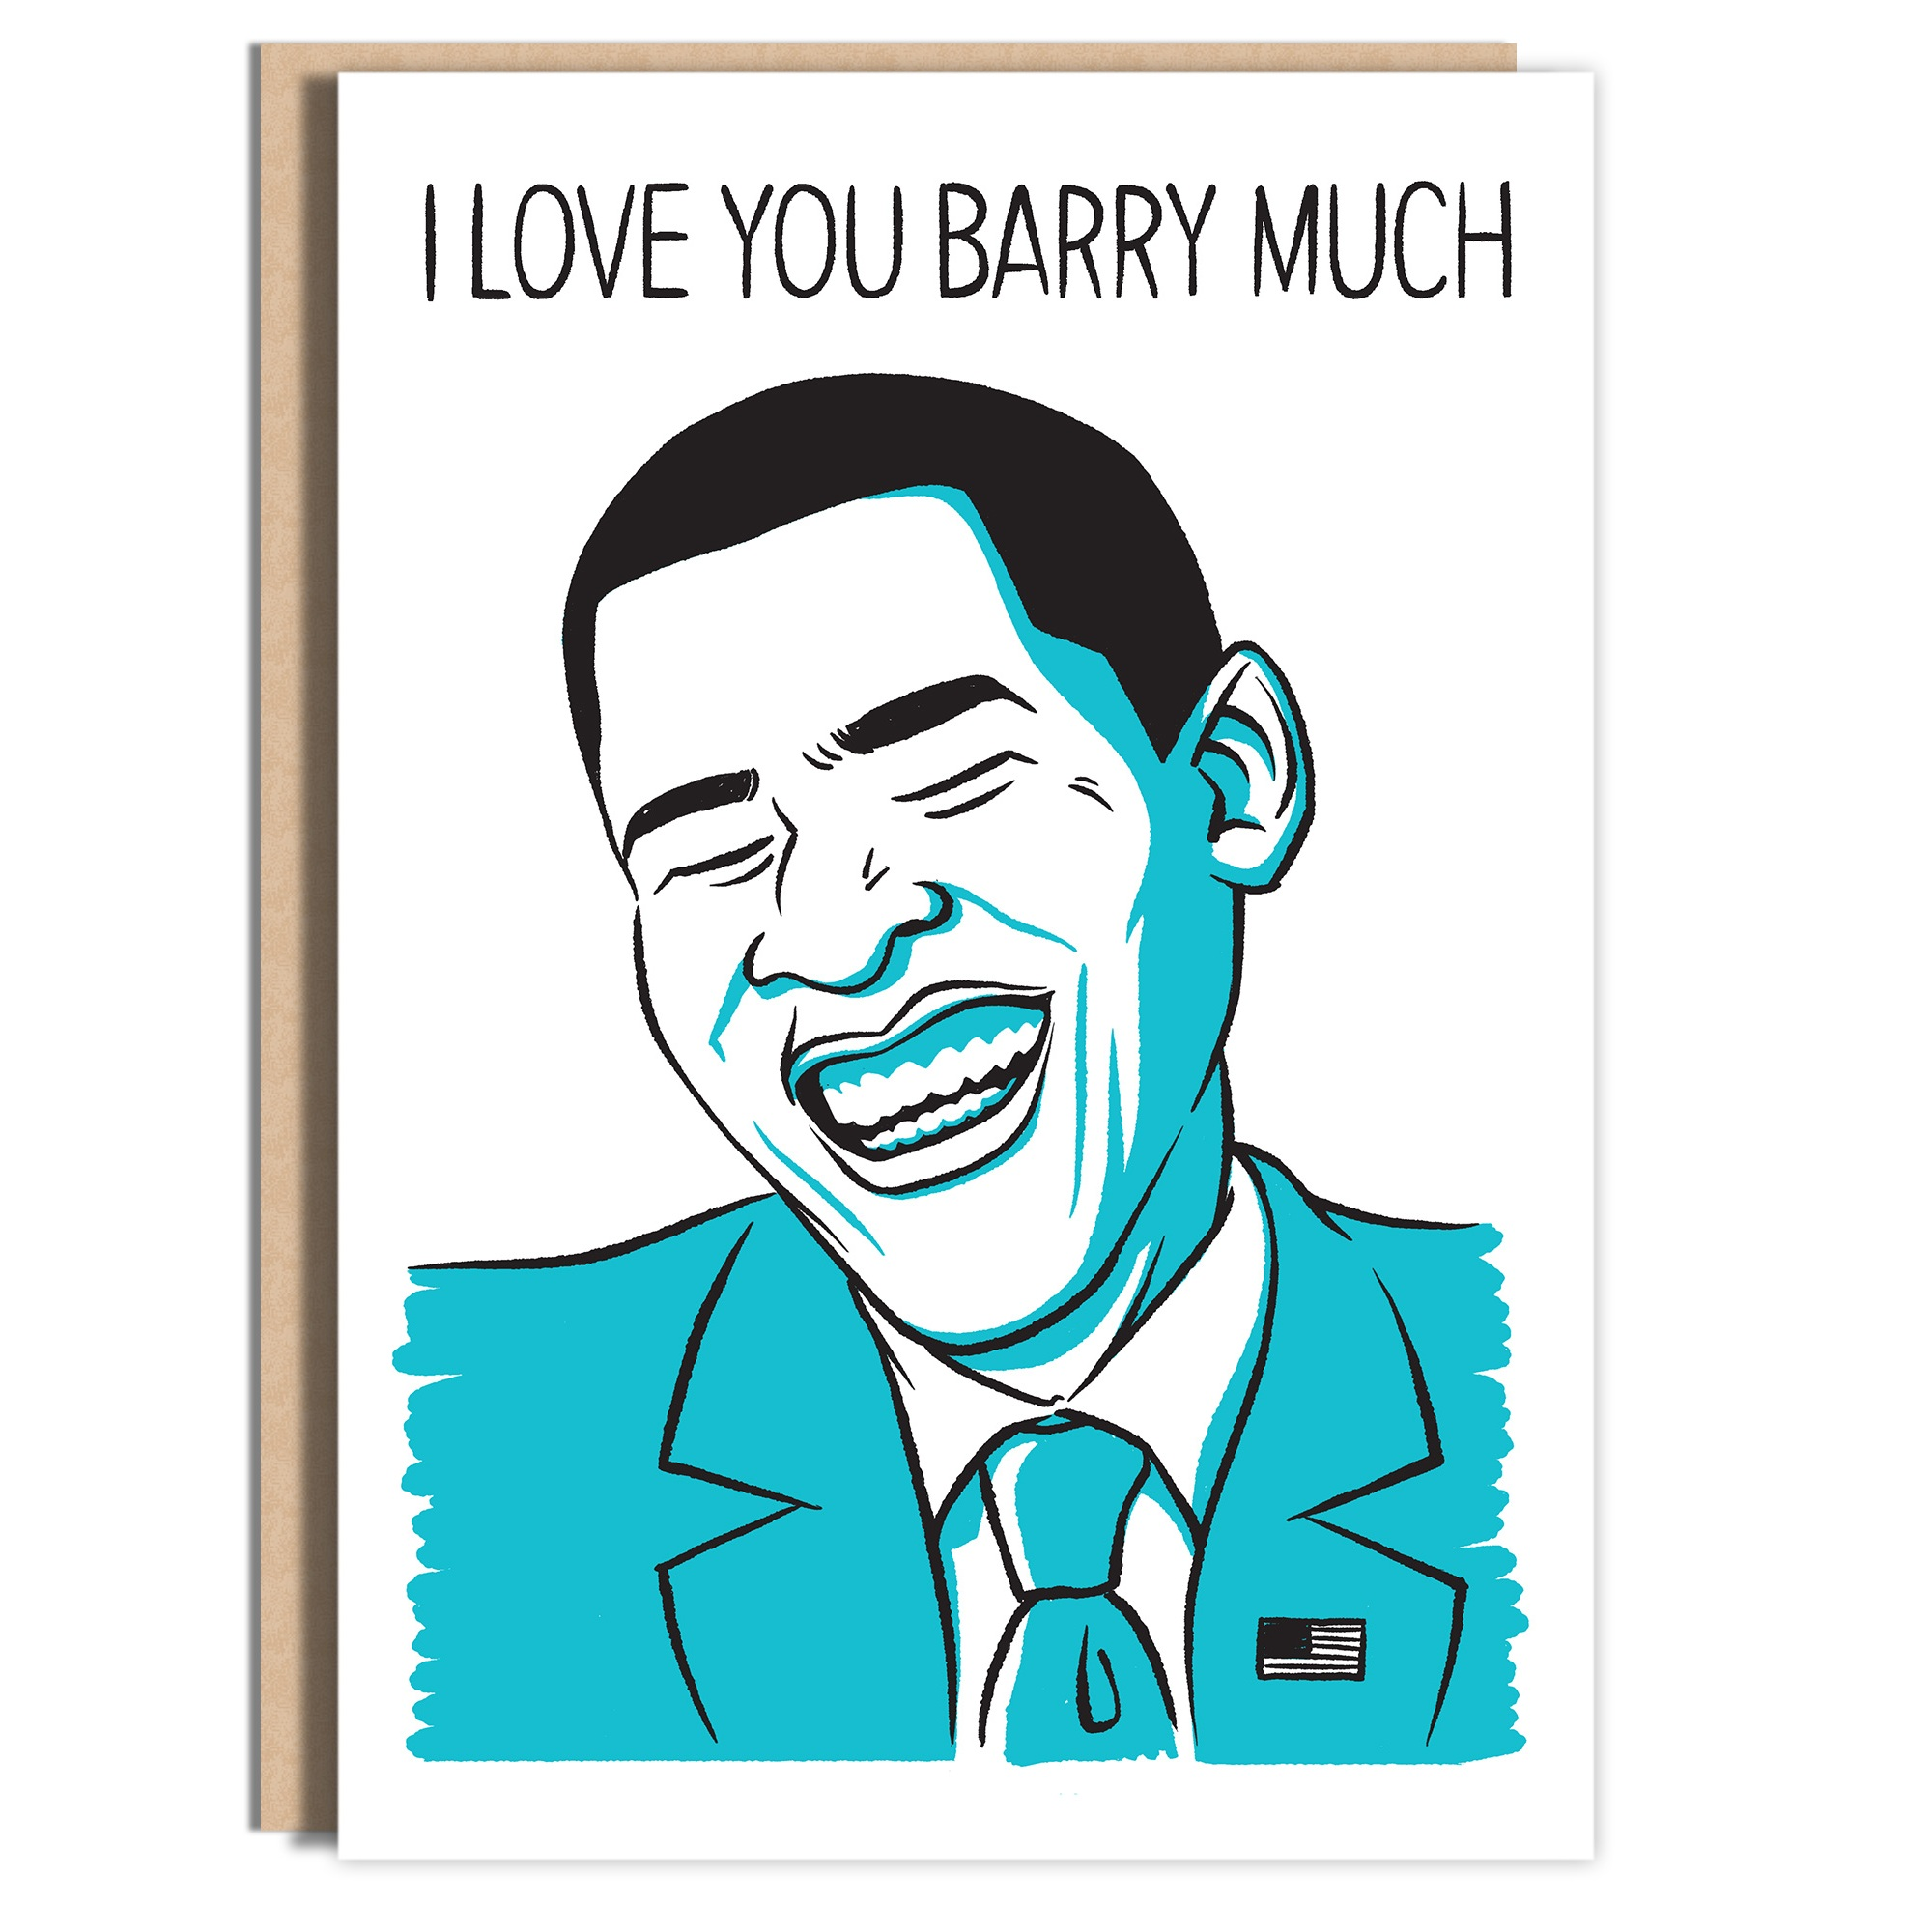 I Love You Barry Much